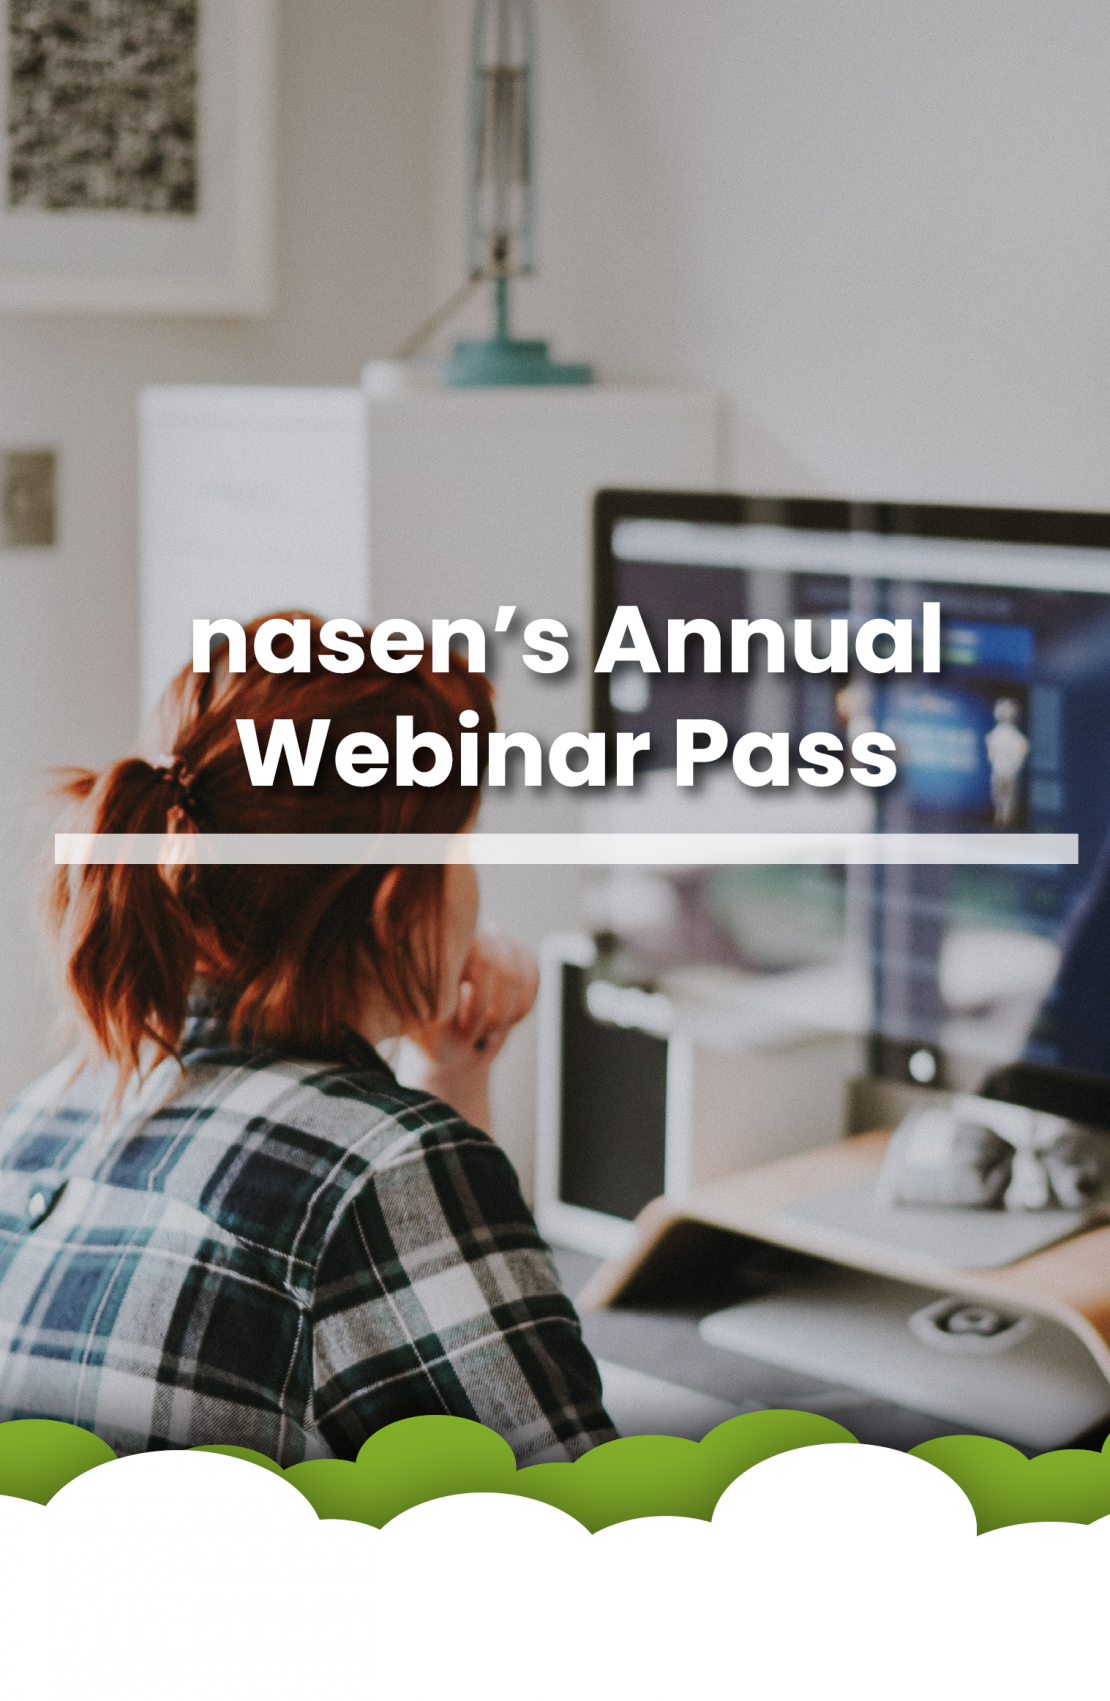 nasen's Annual Webinar pass written on the top of artwork of a woman sat at a computer - green and white clouds frame the bottom of the image